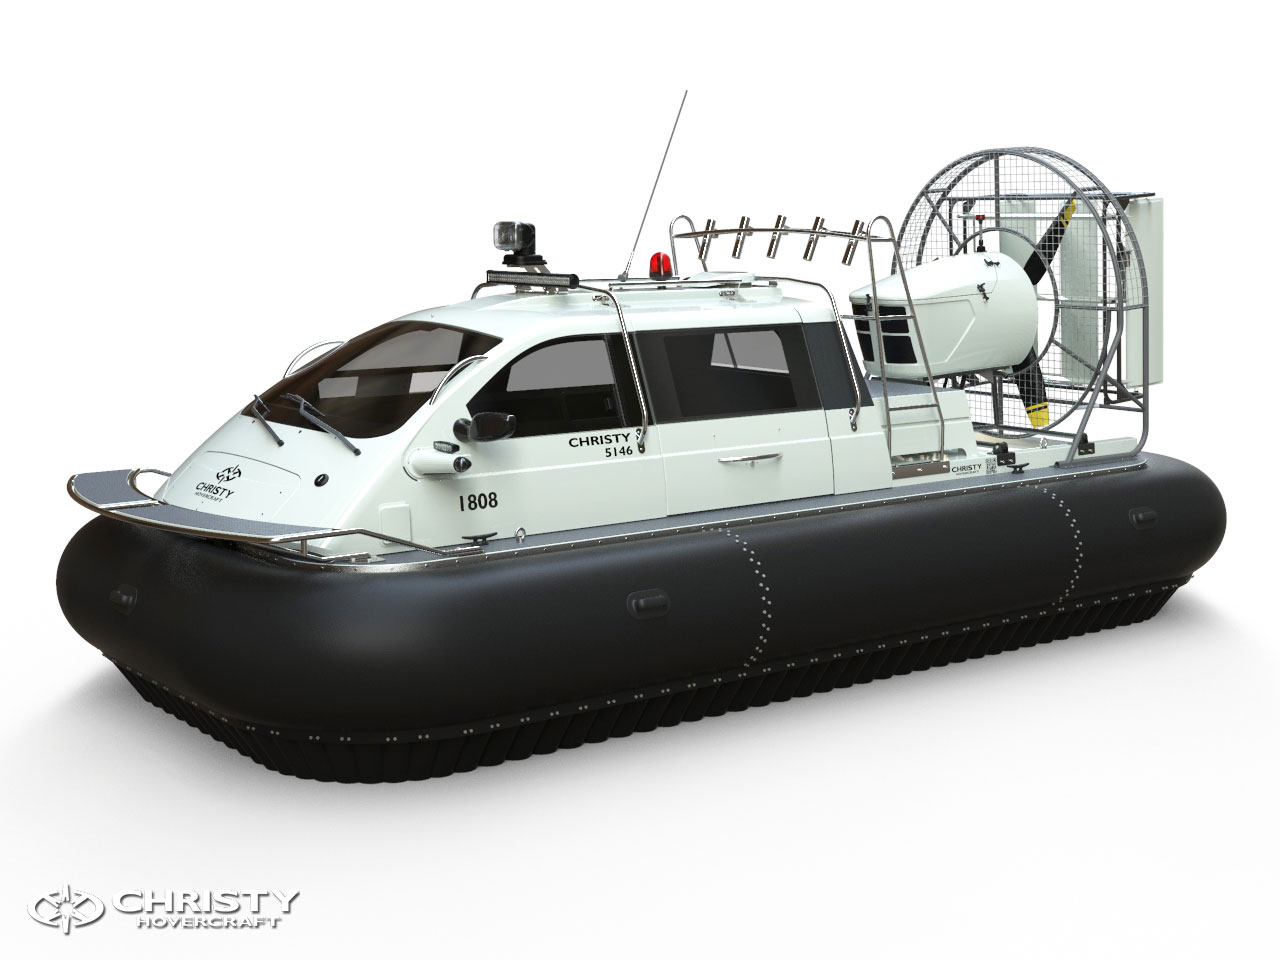 Hovercraft-Christy-5146-FC-Trolling-Edition-(2).jpg | фото №2